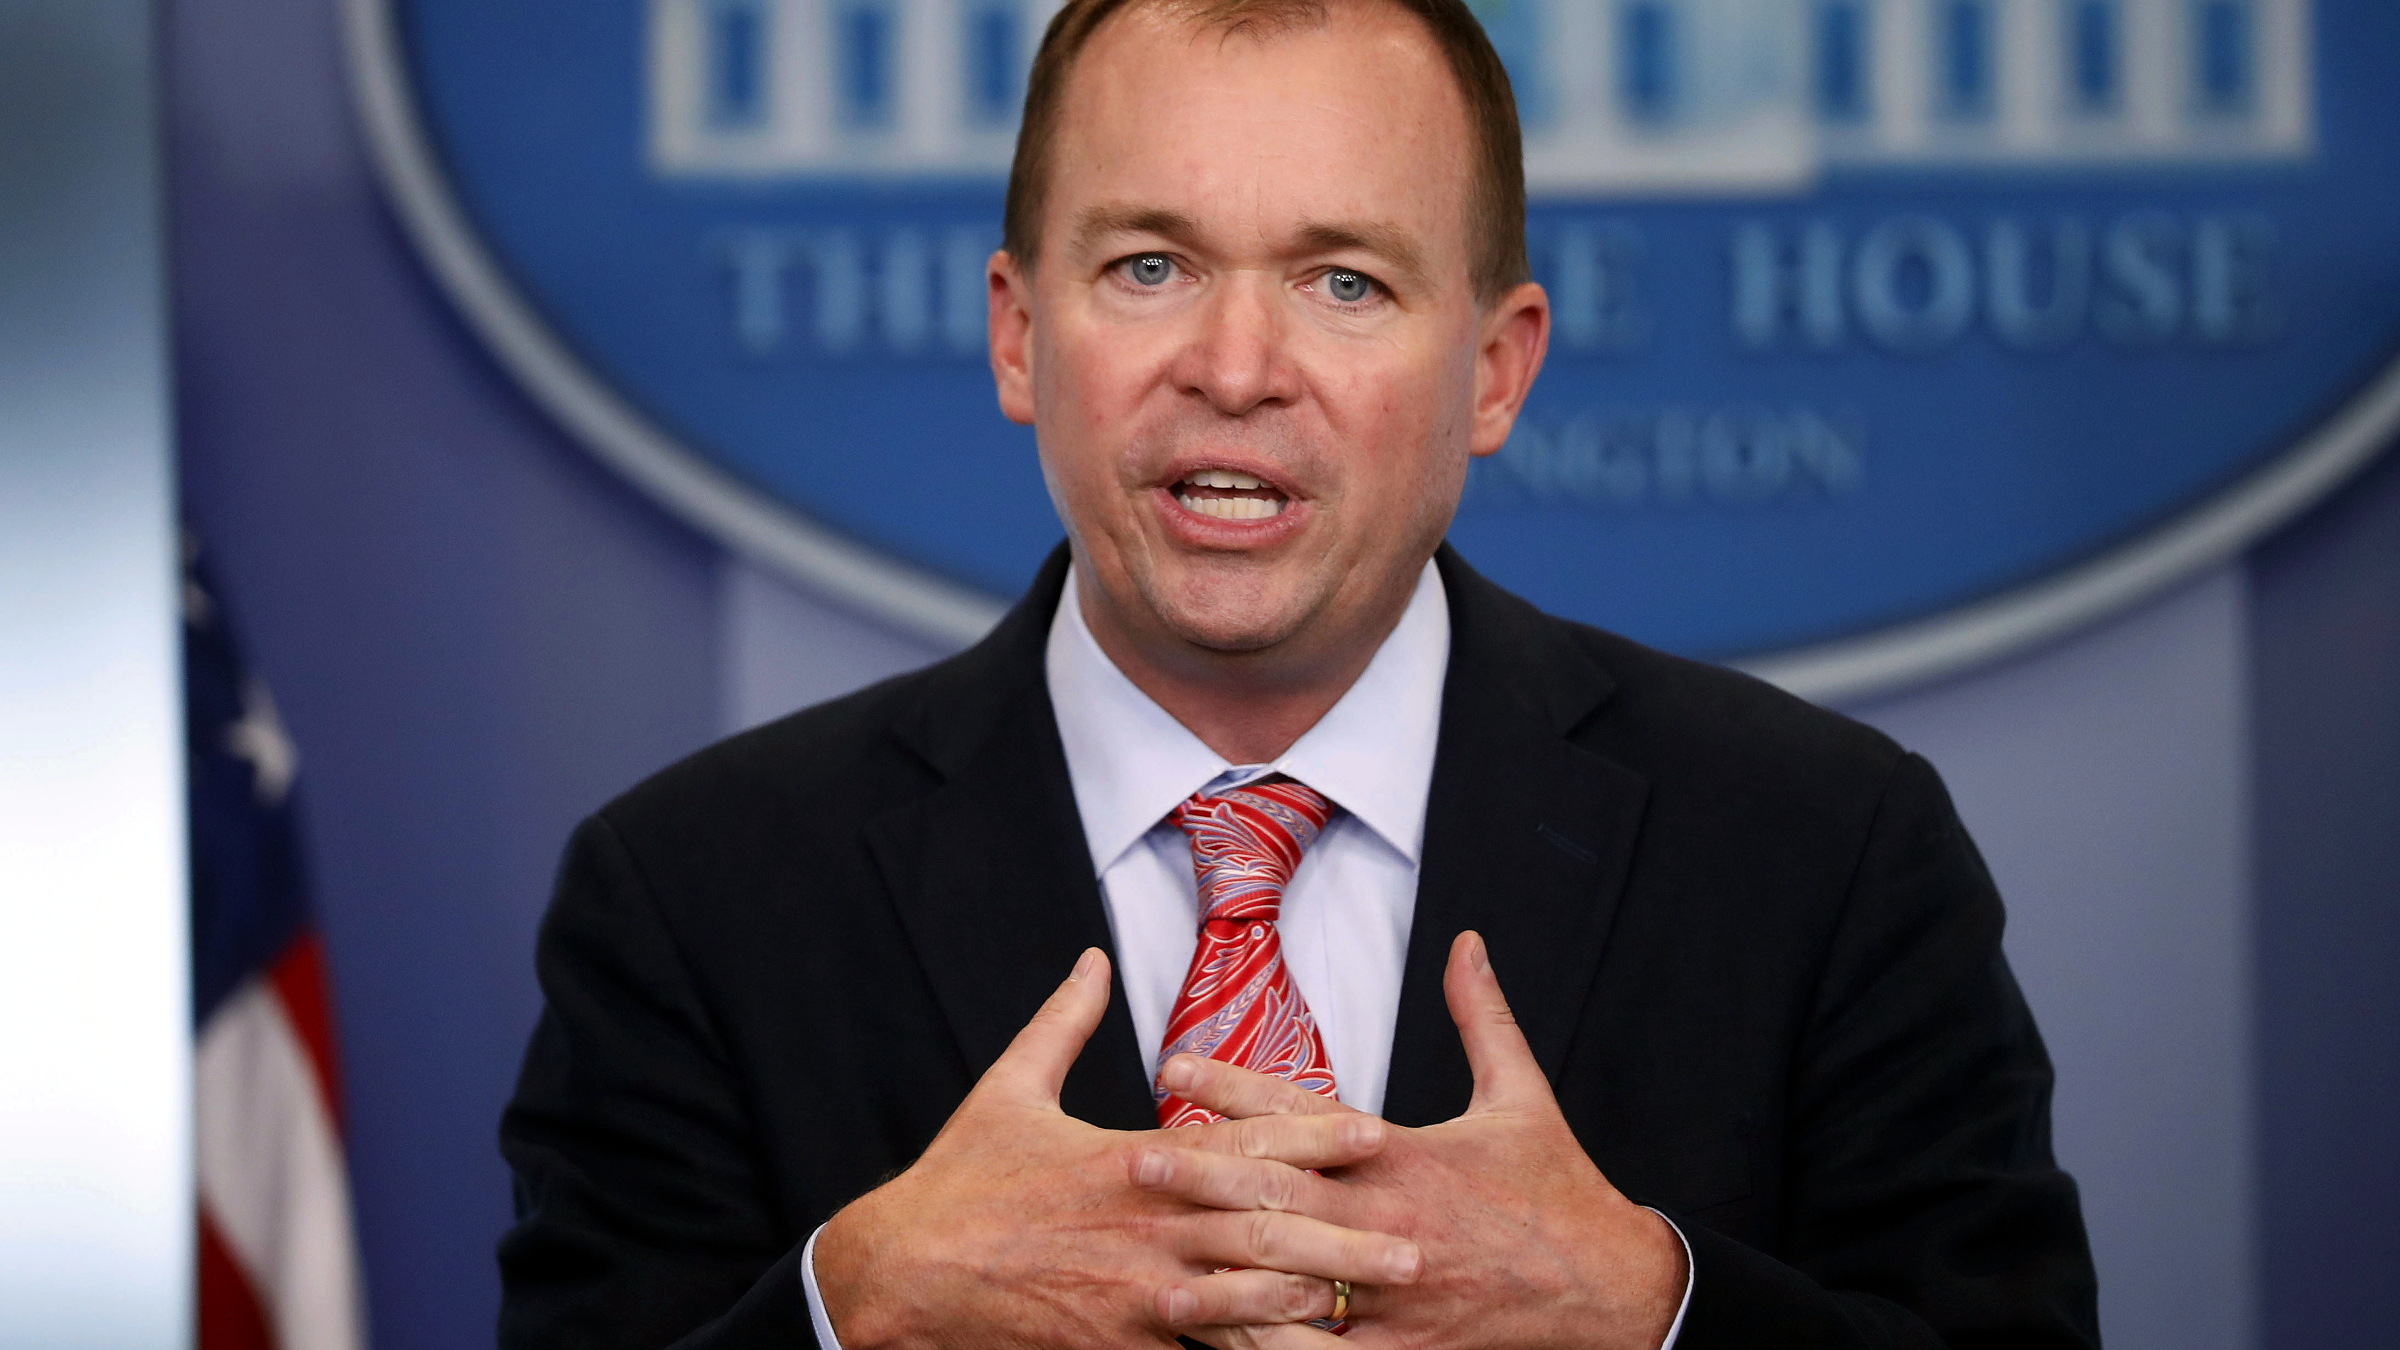 Budget Director Mick Mulvaney gestures as he speaks during the daily press briefing at the White House in Washington, Thursday, July 20, 2017.